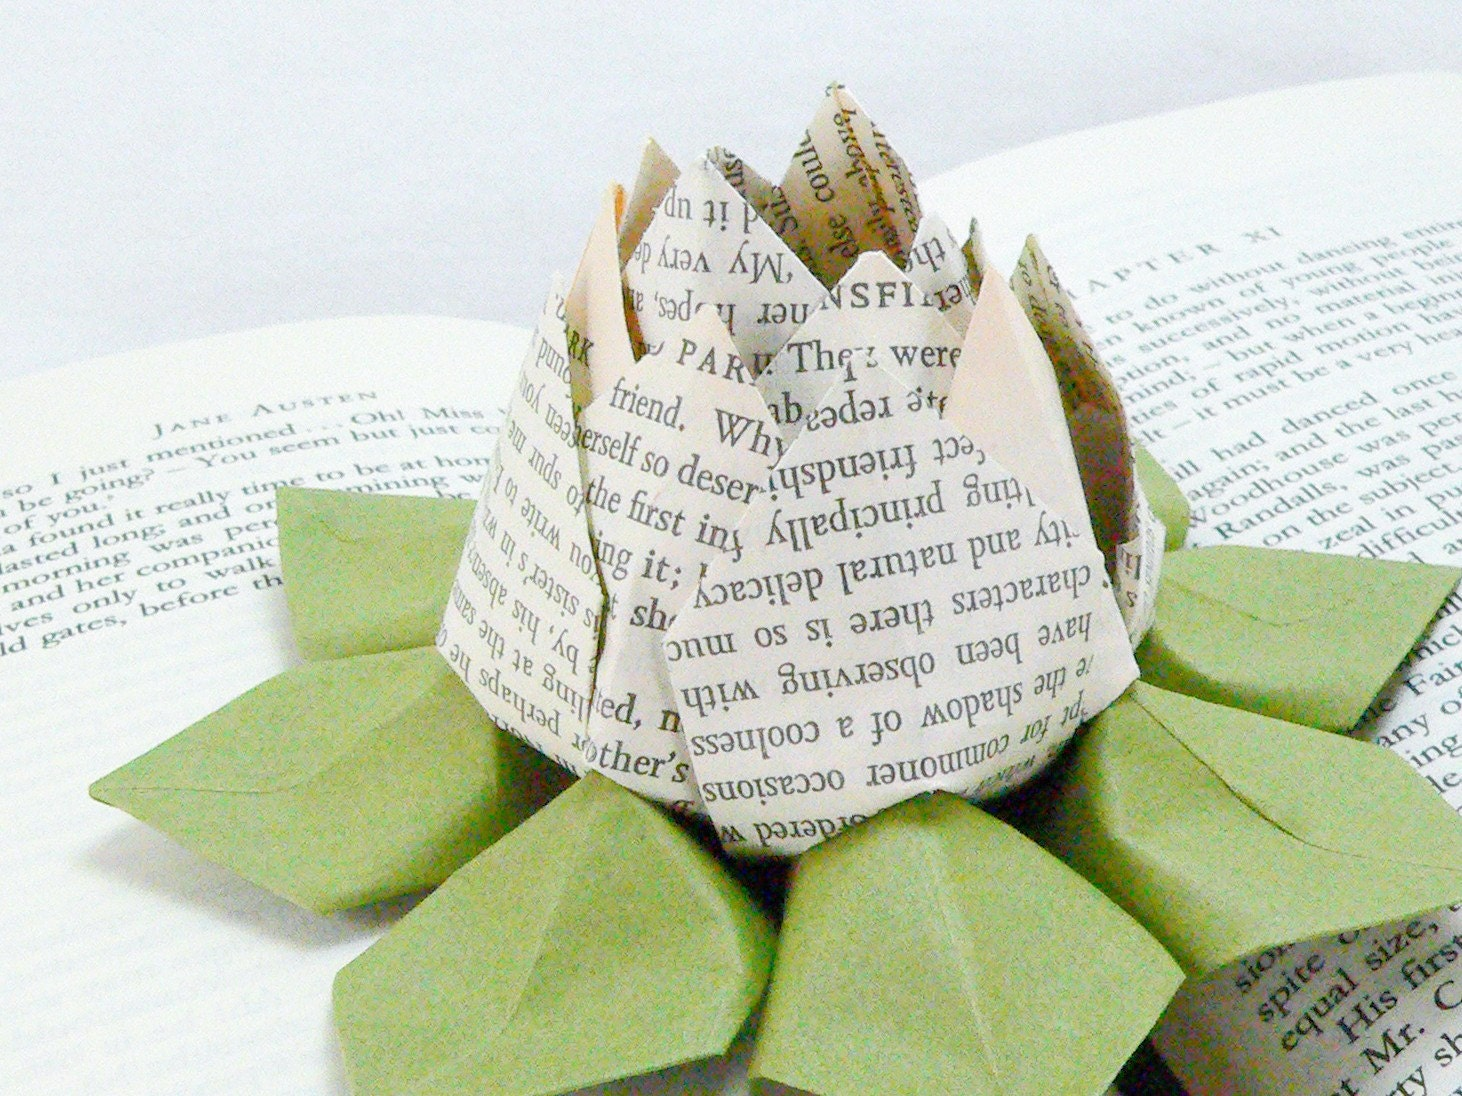 Origami Lotus Flower Decoration or Favor - made from the pages of  an old Jane Austen novel